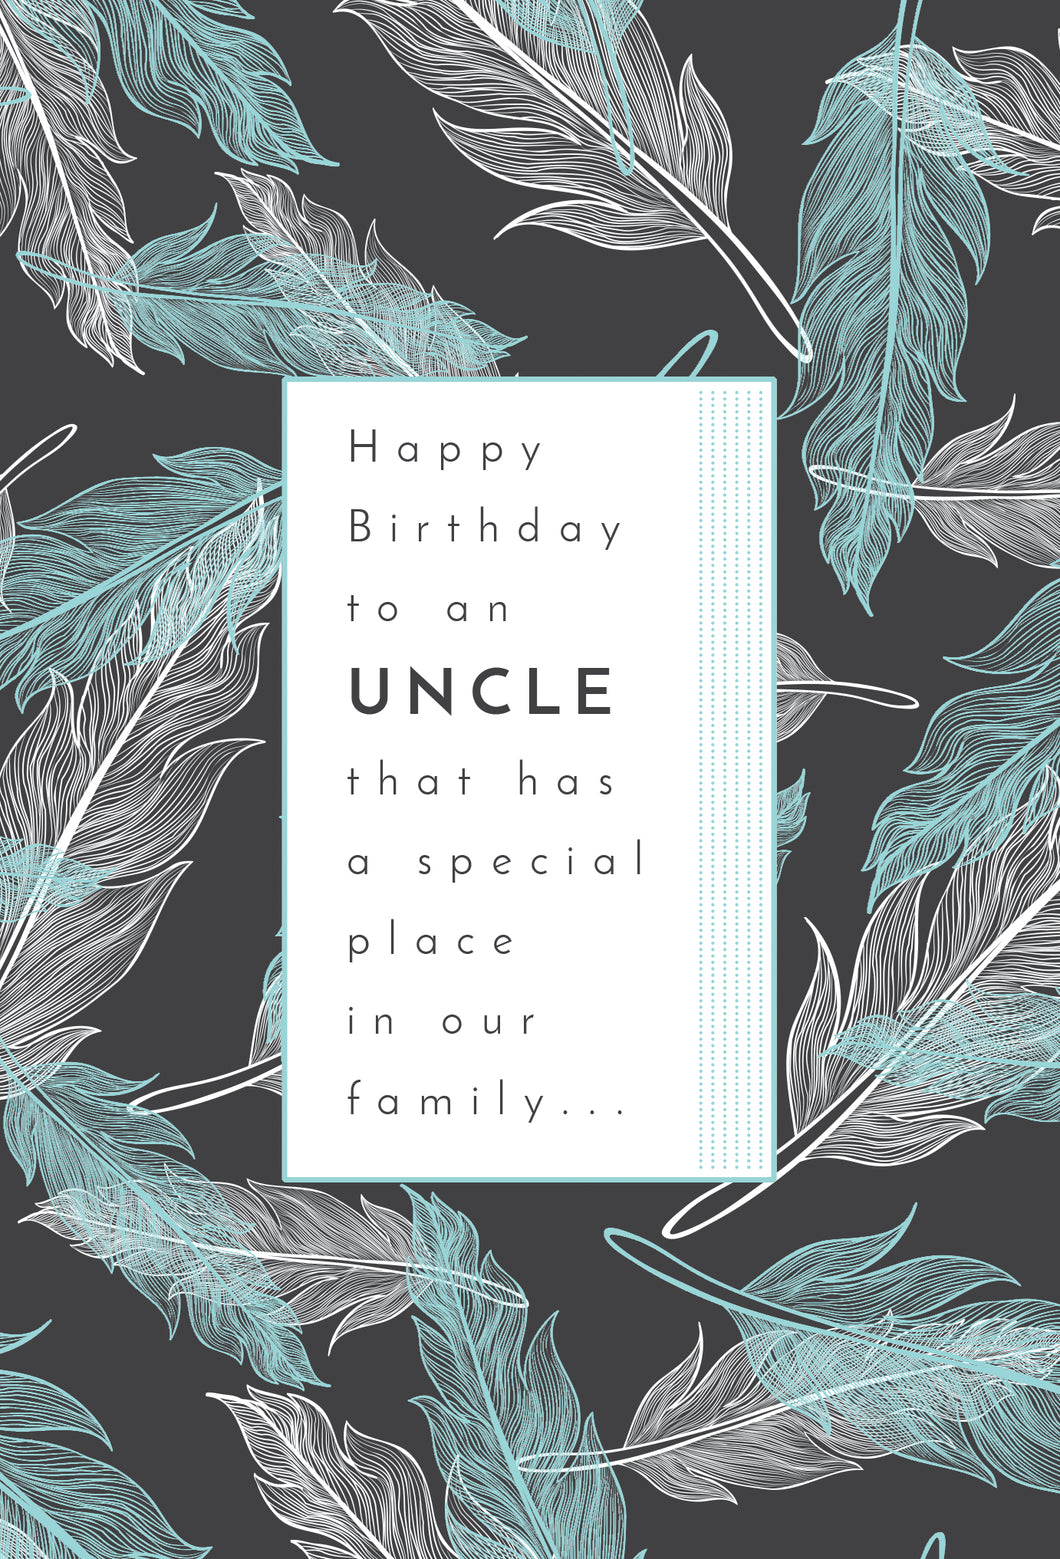 Birthday Uncle Card Special Place in Family